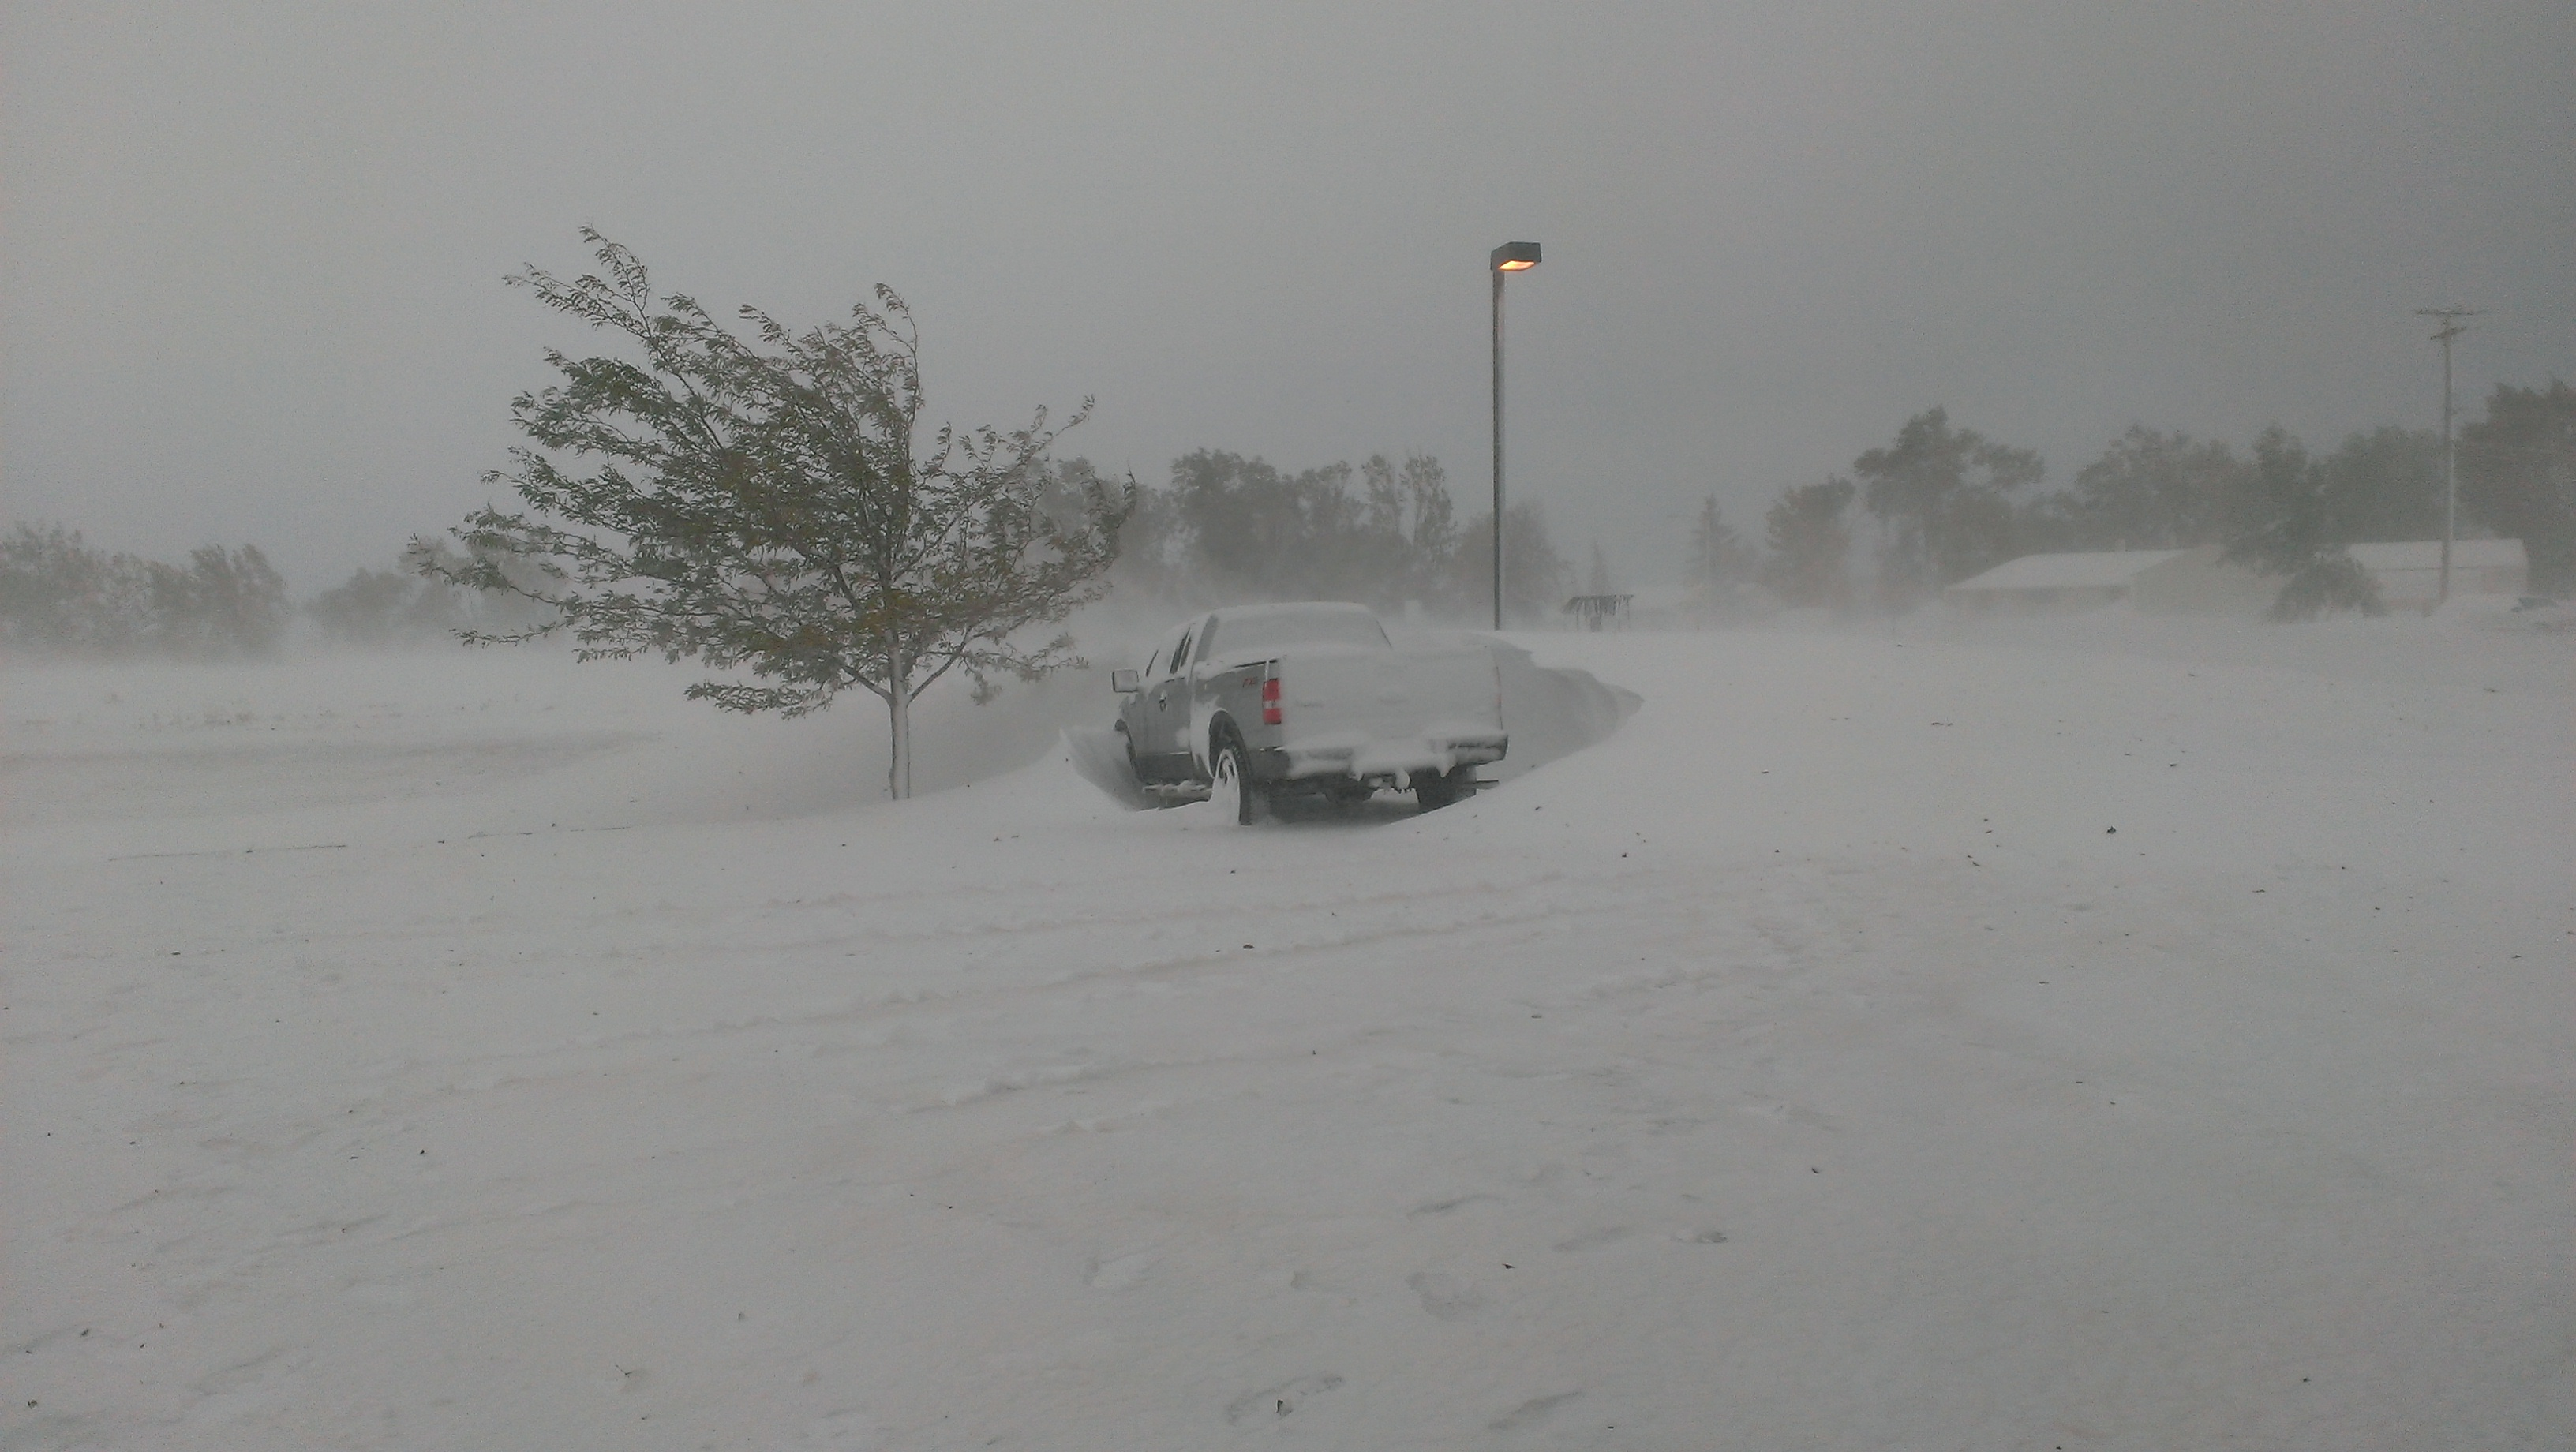 A truck in our office parking lot during the blizzard.